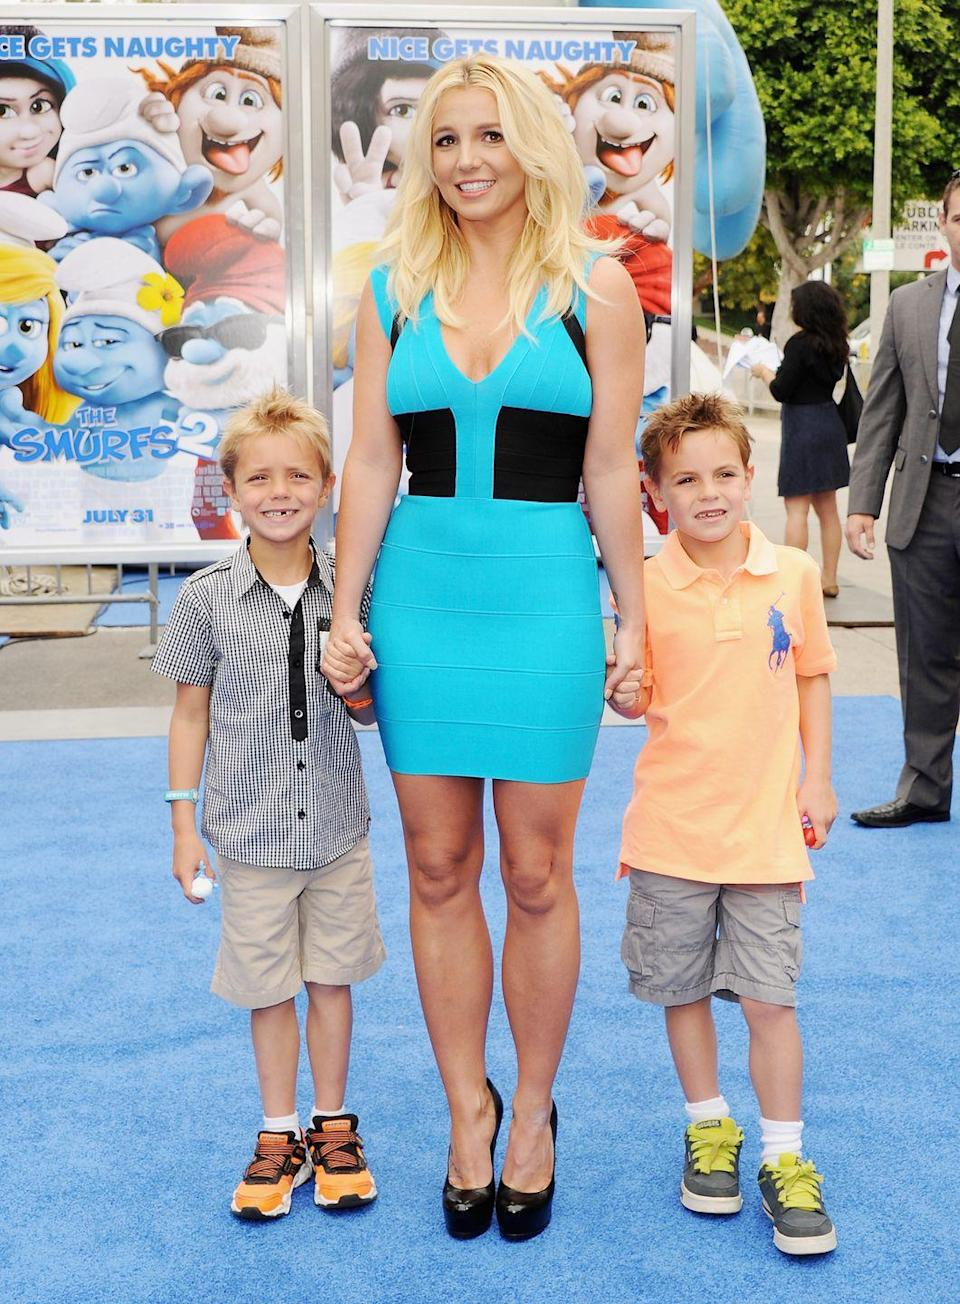 """<p>""""<a href=""""https://people.com/parents/britney-spears-talks-being-single-mom-to-sons/"""" rel=""""nofollow noopener"""" target=""""_blank"""" data-ylk=""""slk:My kids"""" class=""""link rapid-noclick-resp"""">My kids</a> come first, always. There is nothing more rewarding than being a mom and watching my sons grow into young men. I am so lucky that I get to experience all of life's adventures with them.""""</p>"""